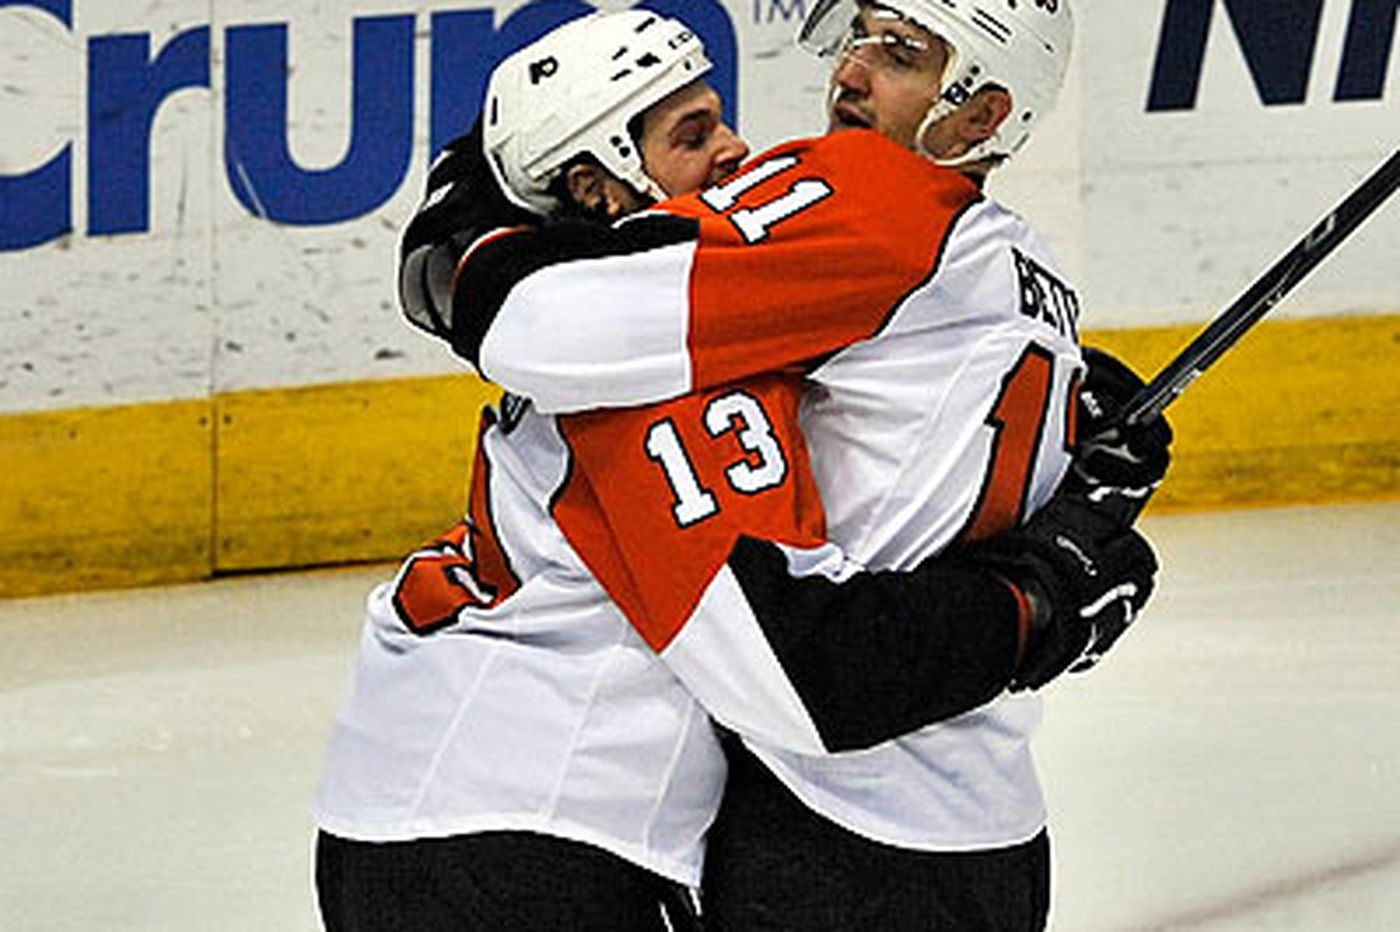 Flyers end skid with 5-2 win